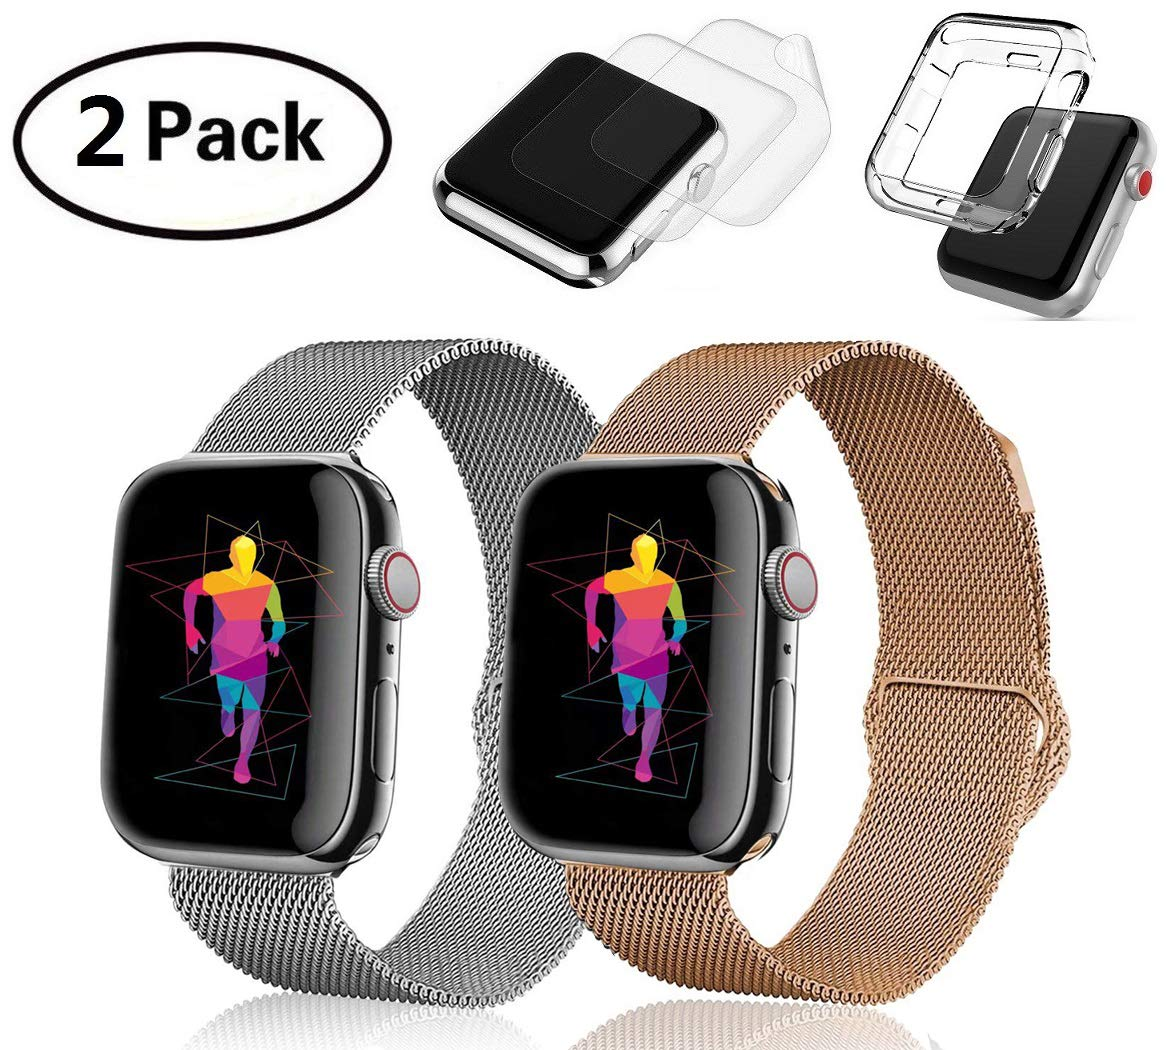 (2 Pack) Compatible Apple Watch Band 38mm 40mm, G.P Stainless Steel Mesh Sport Wristband Loop with Watch Protective Case Compatible for Series 4/3/2/1, 2X Screen Protector As Gift by Greenpointselect